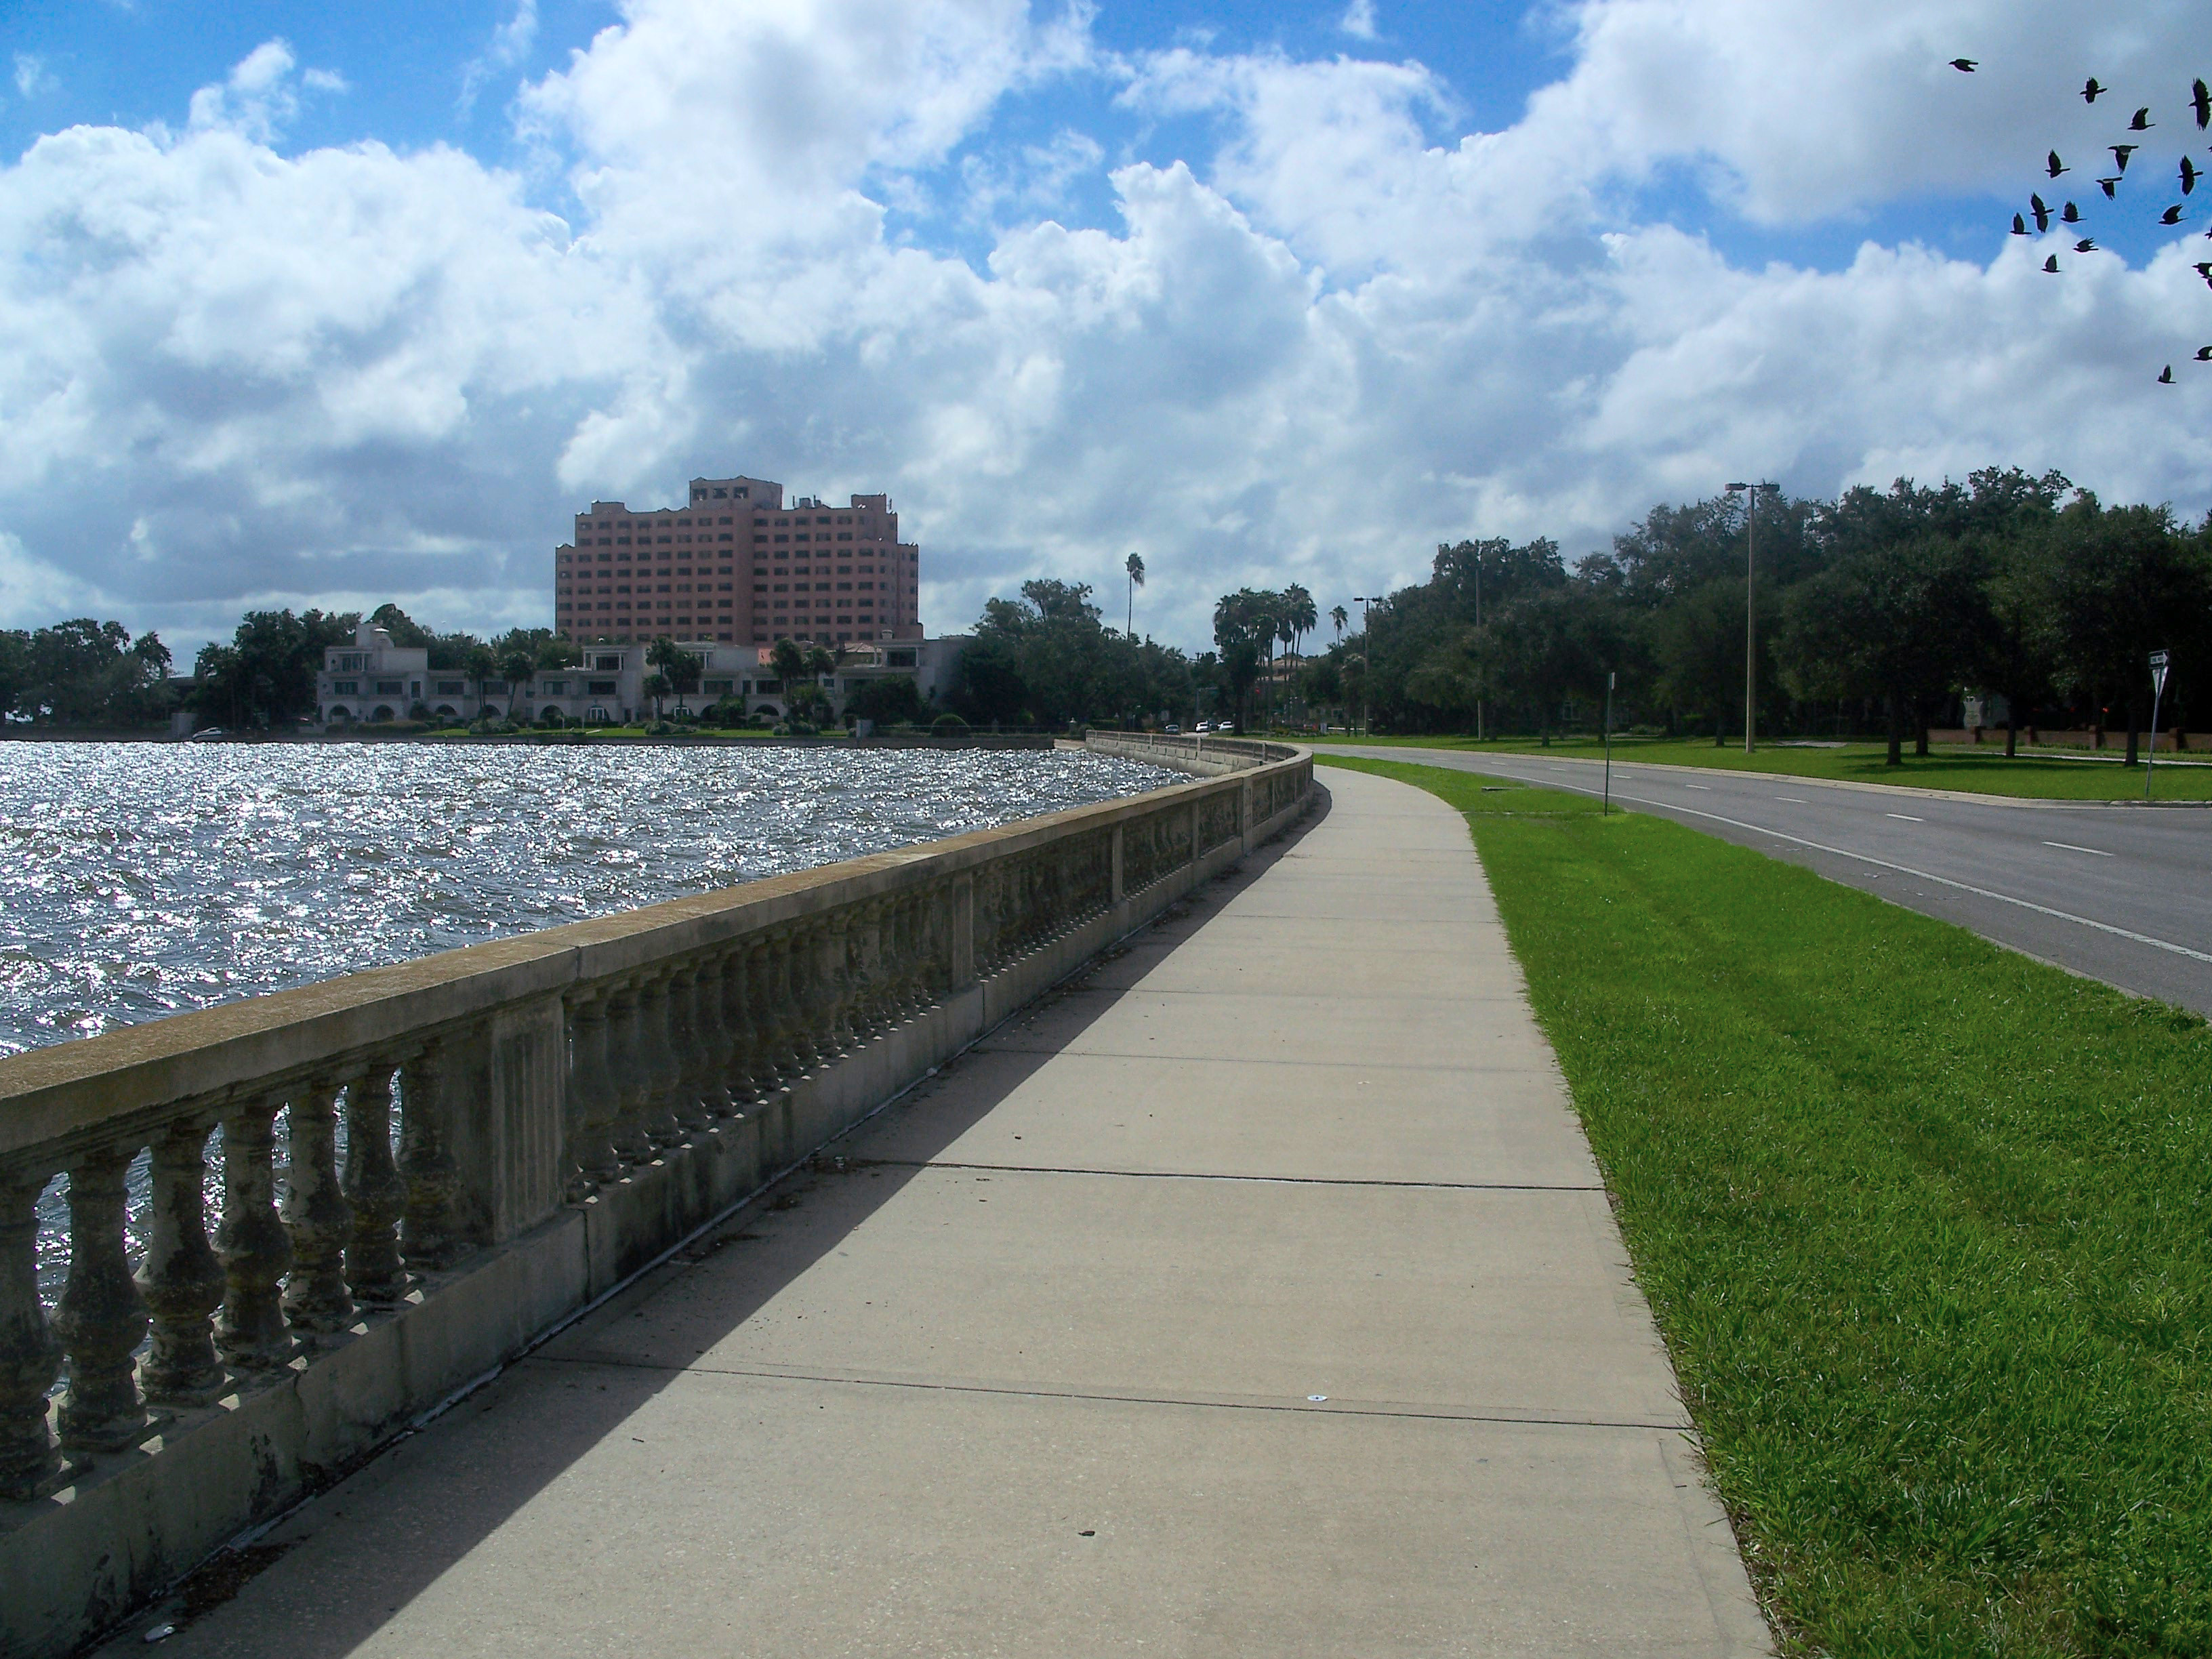 Tampa_Bayshore_Blvd_looking_south01.jpg